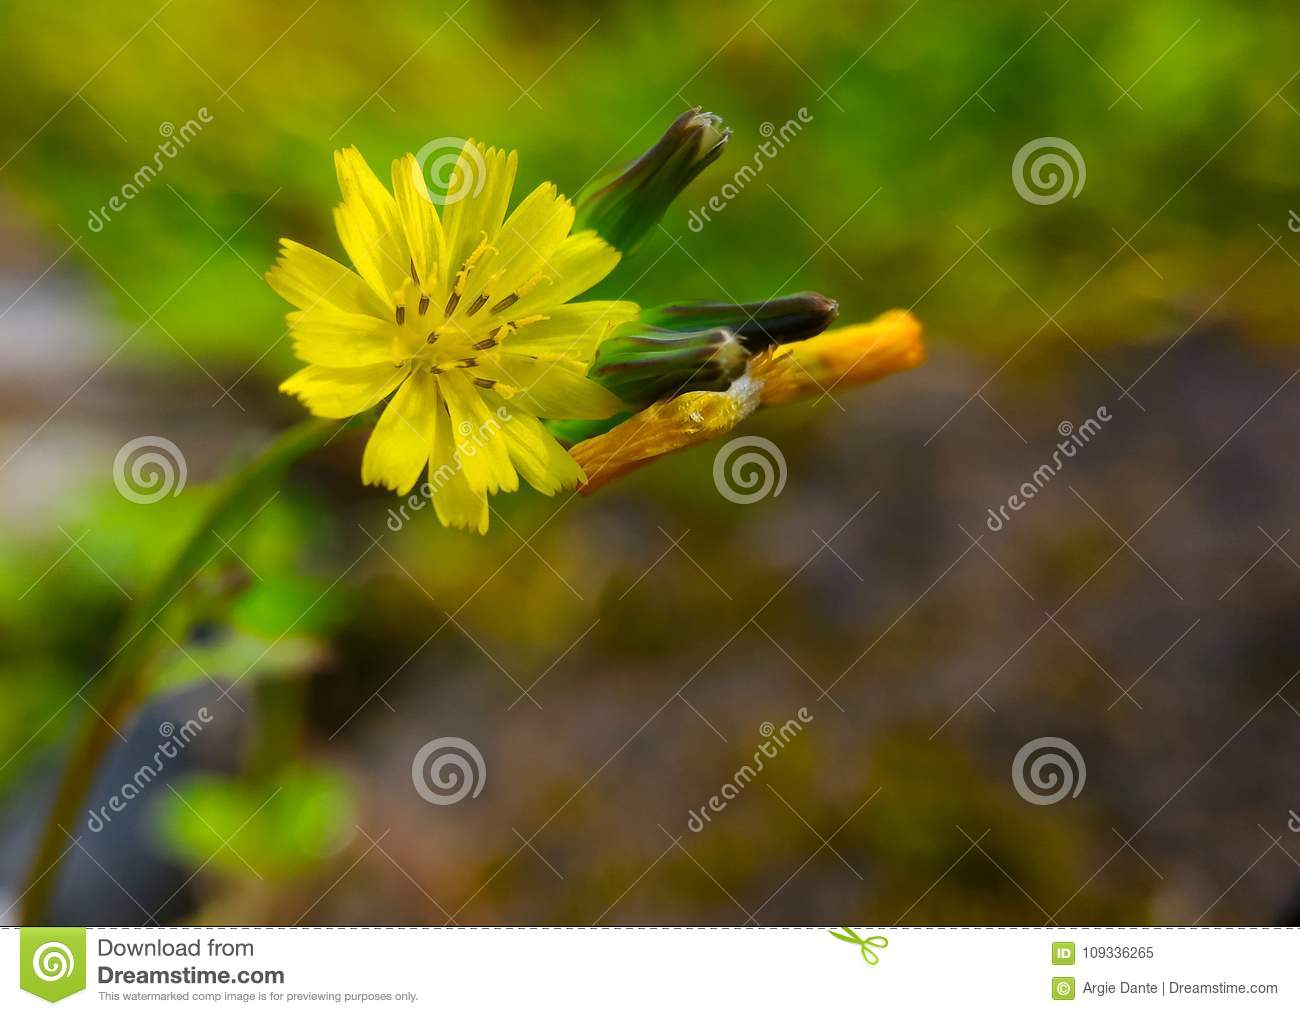 Tiny yellow flower among the grasses stock image image of nature download tiny yellow flower among the grasses stock image image of nature buds mightylinksfo